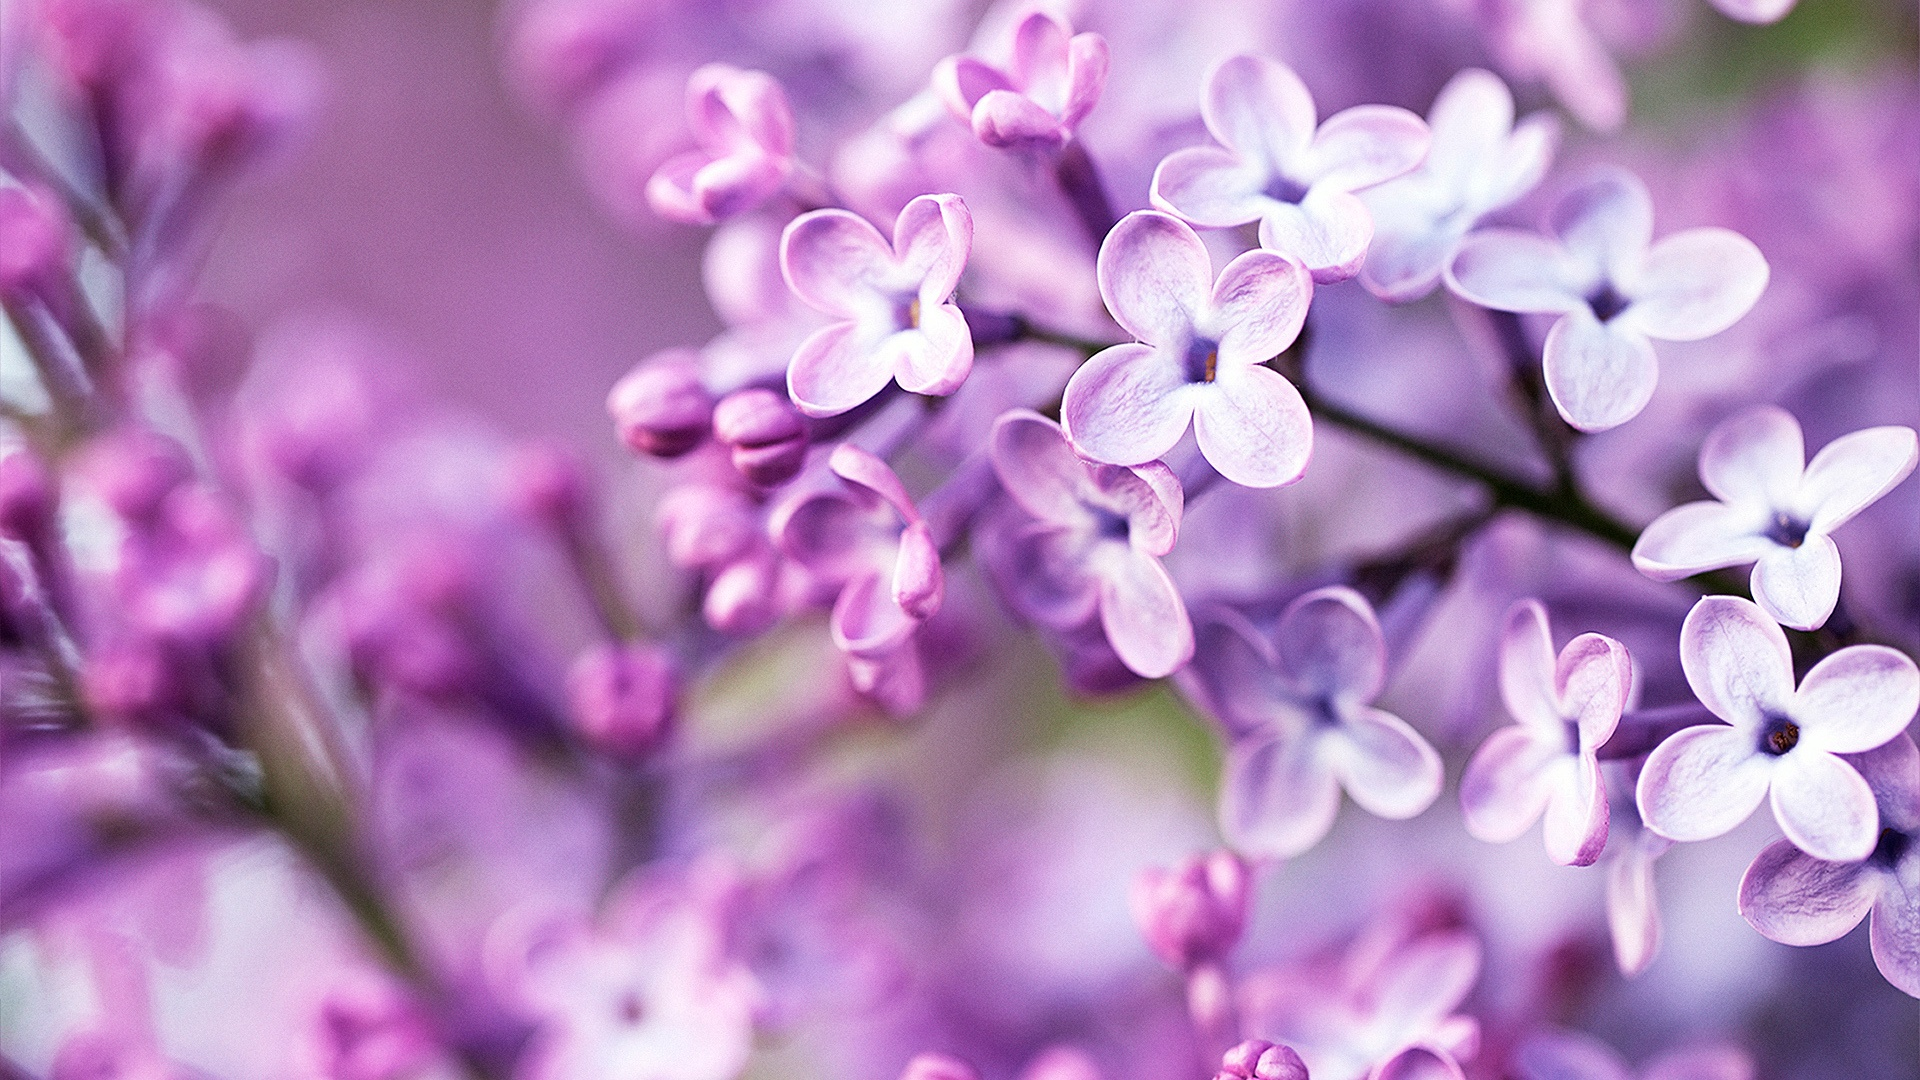 Purple Flowers Tumblr Background 1 HD Wallpapers